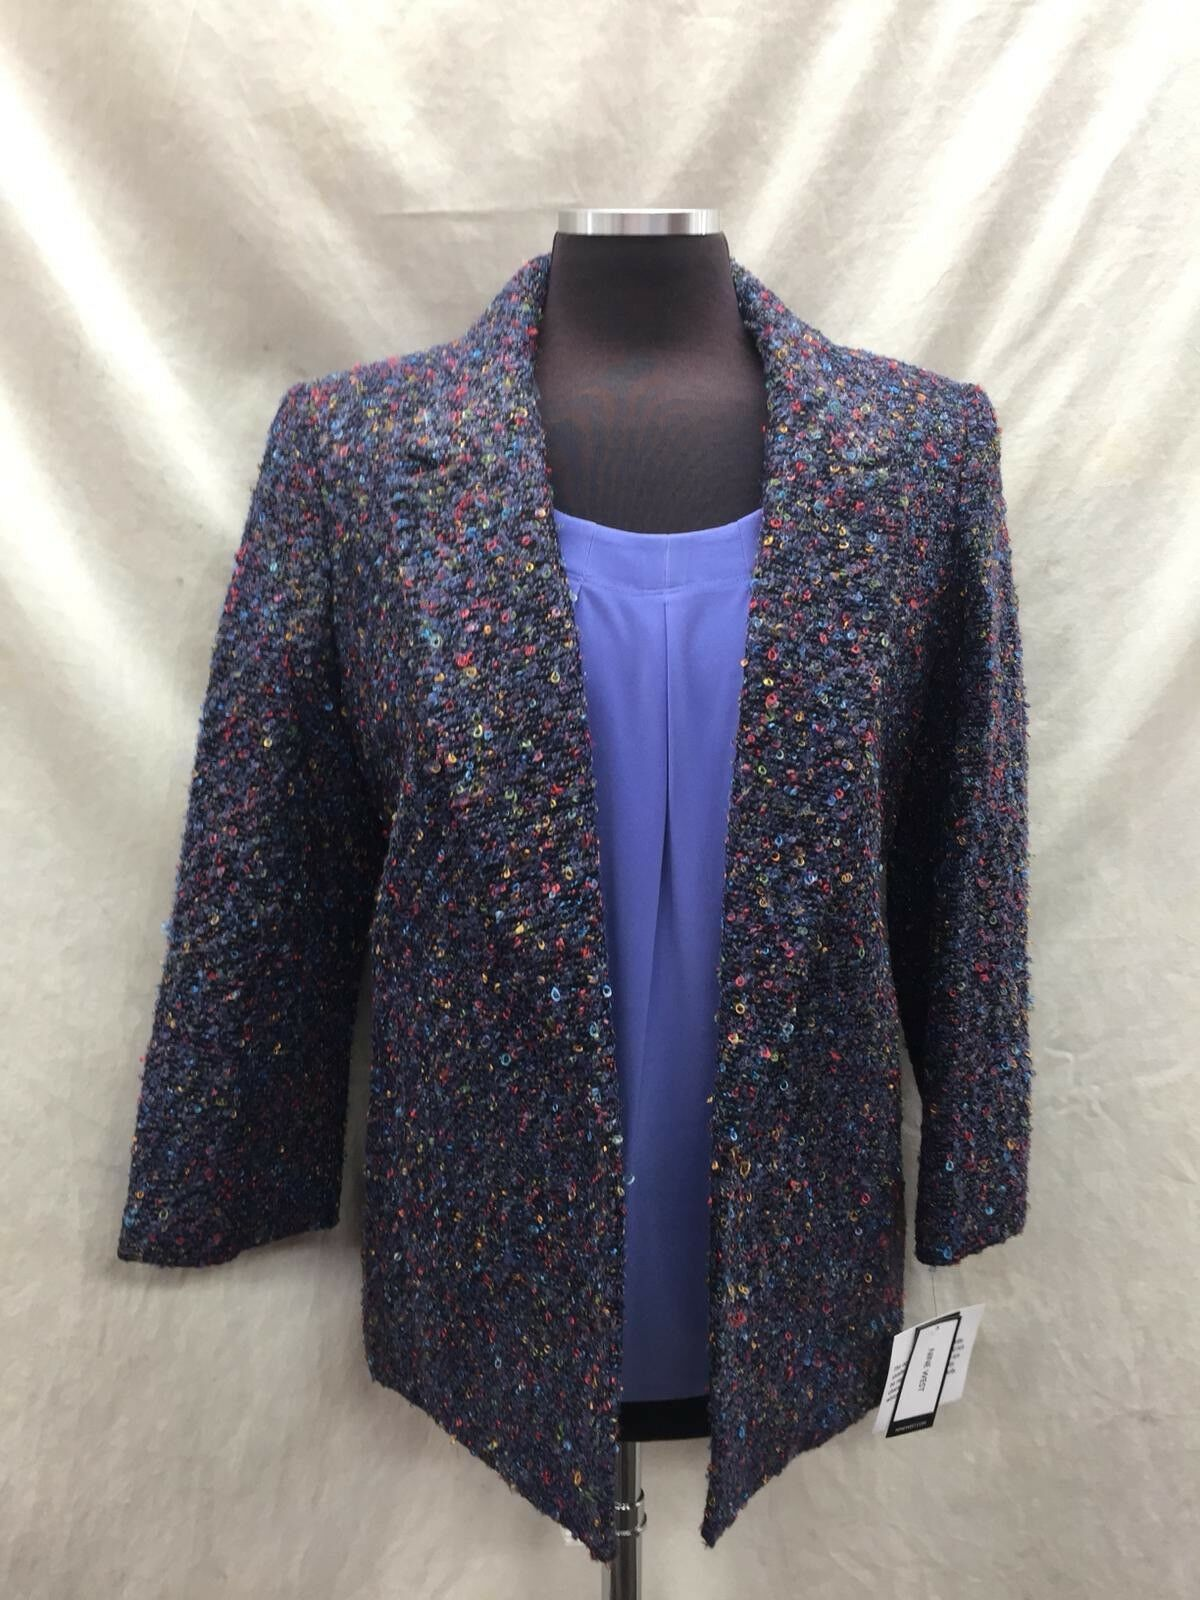 NINE WEST TWEED BLAZER SIZE SIZE SIZE 16 NEW WITH TAG RETAIL 139 LINED TANK NOT INCLUDED 305e6a